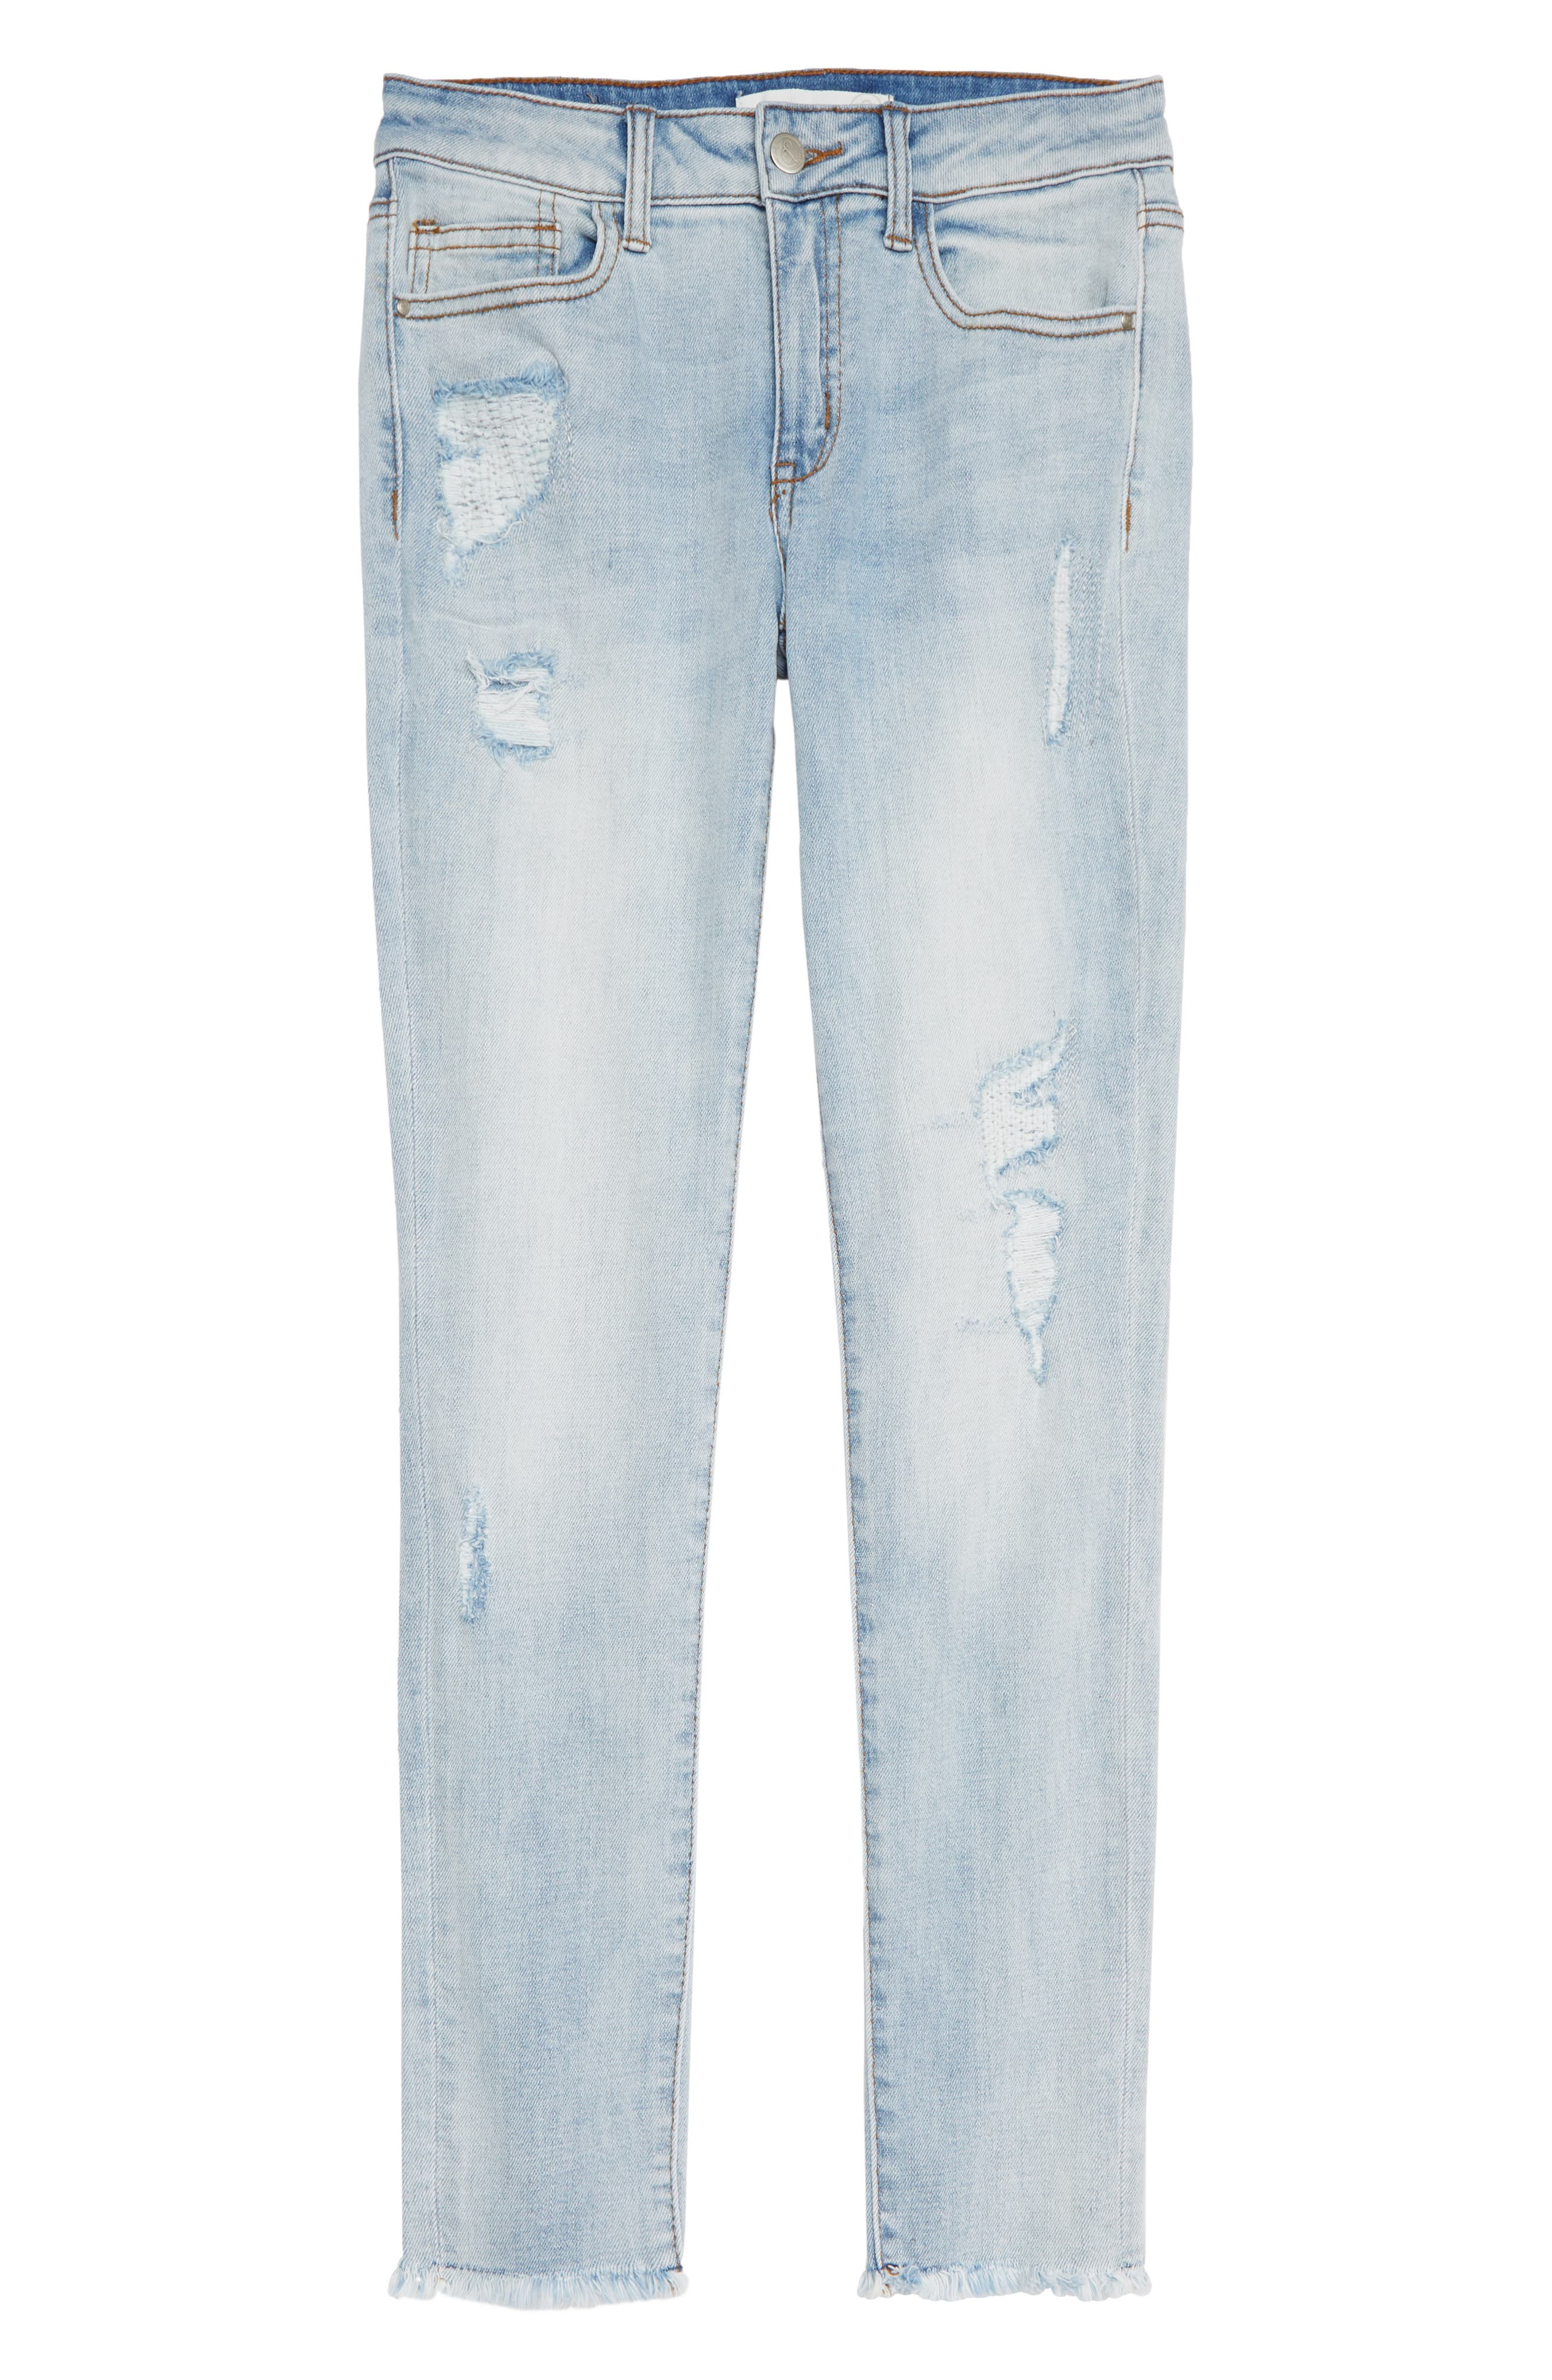 Repaired Girlfriend Jeans,                         Main,                         color, 450